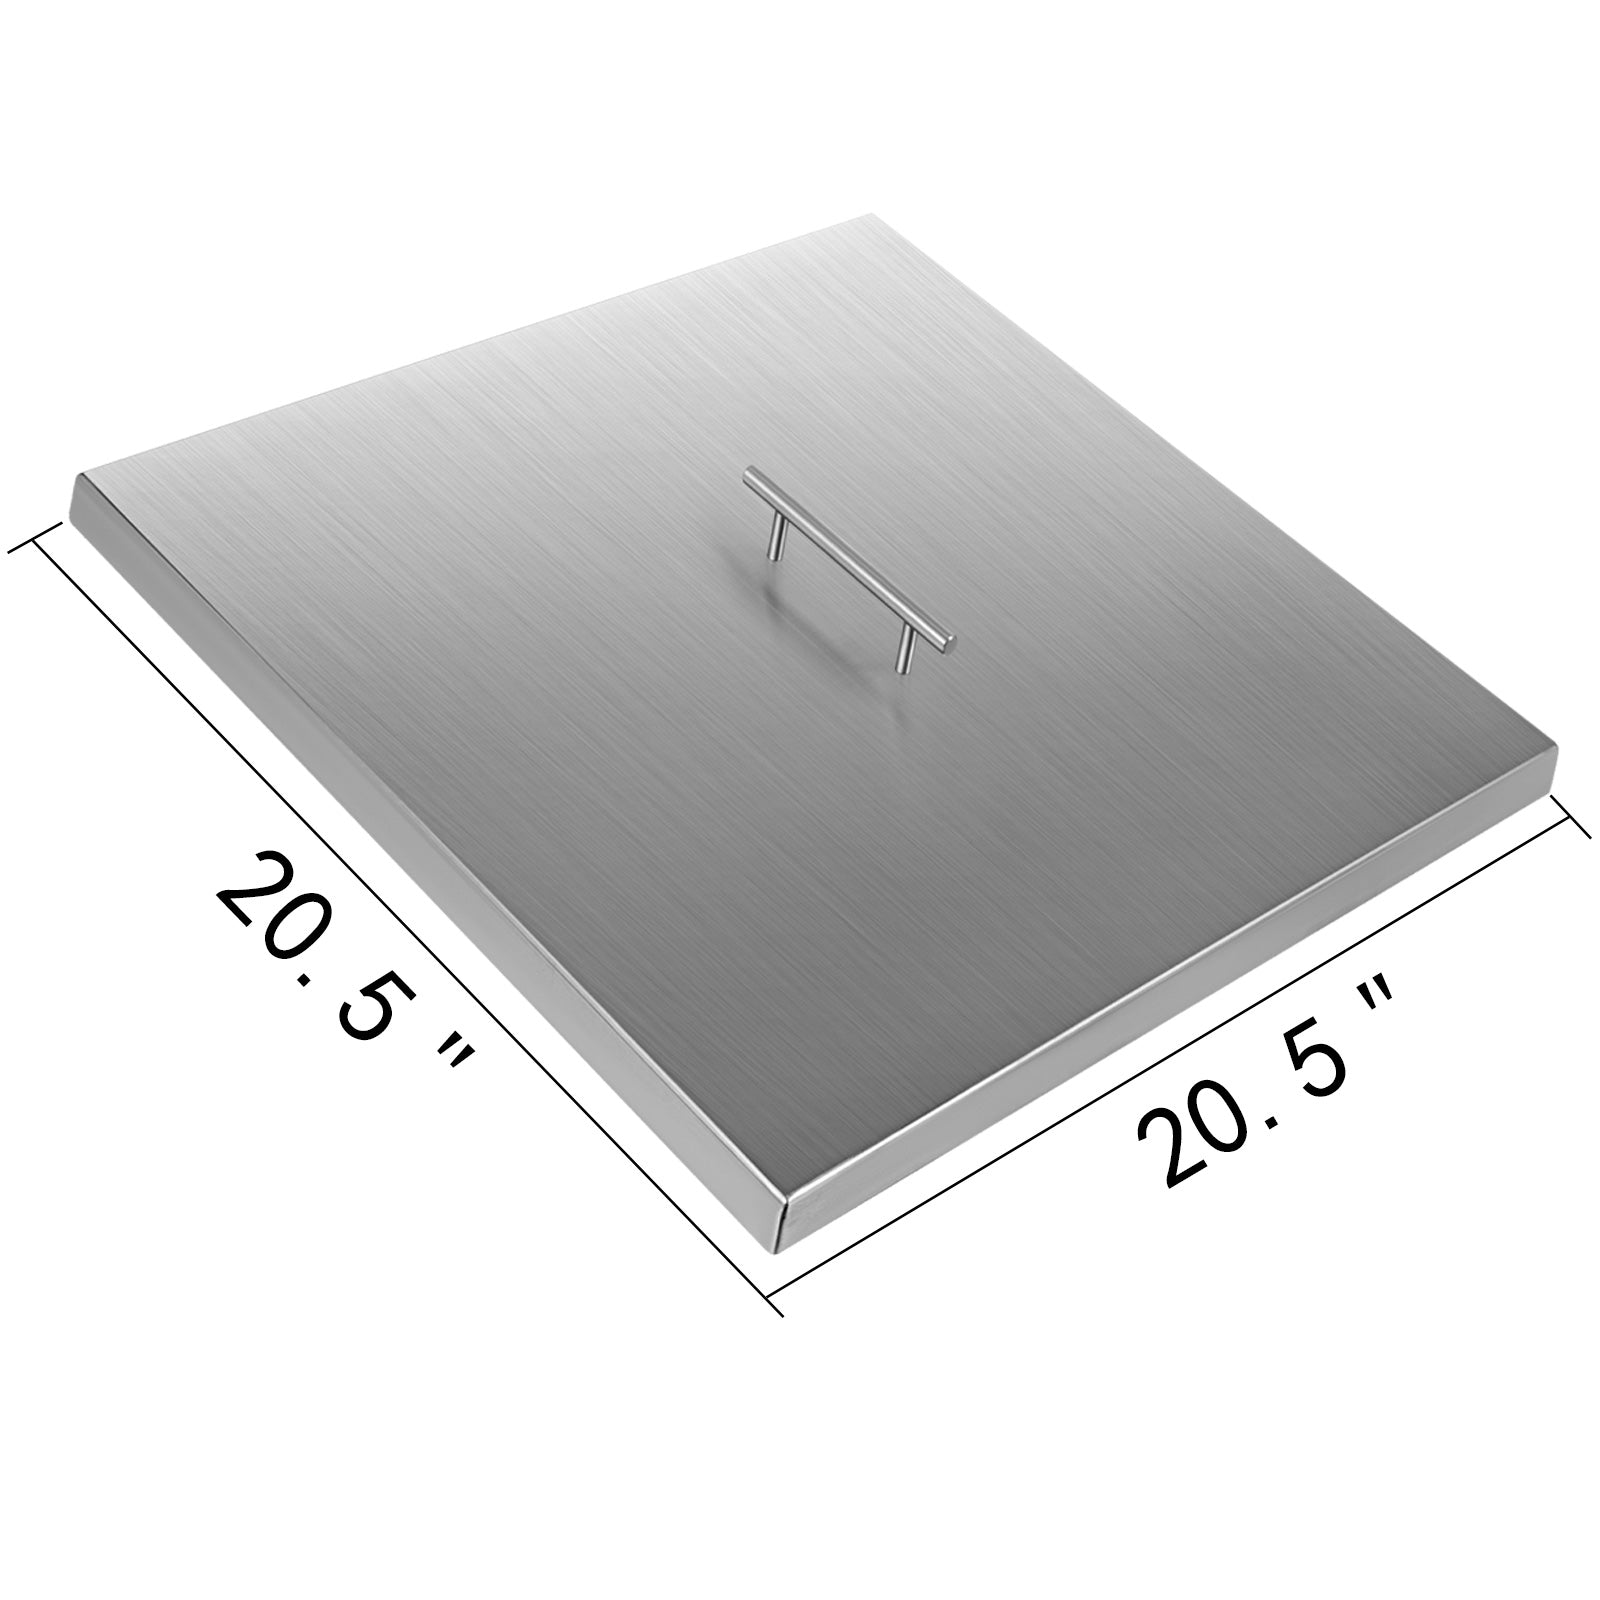 "21""x 21"" Fire Pit Cover Lid For Linear Burner Outdoor Stainless Steel Protecter"